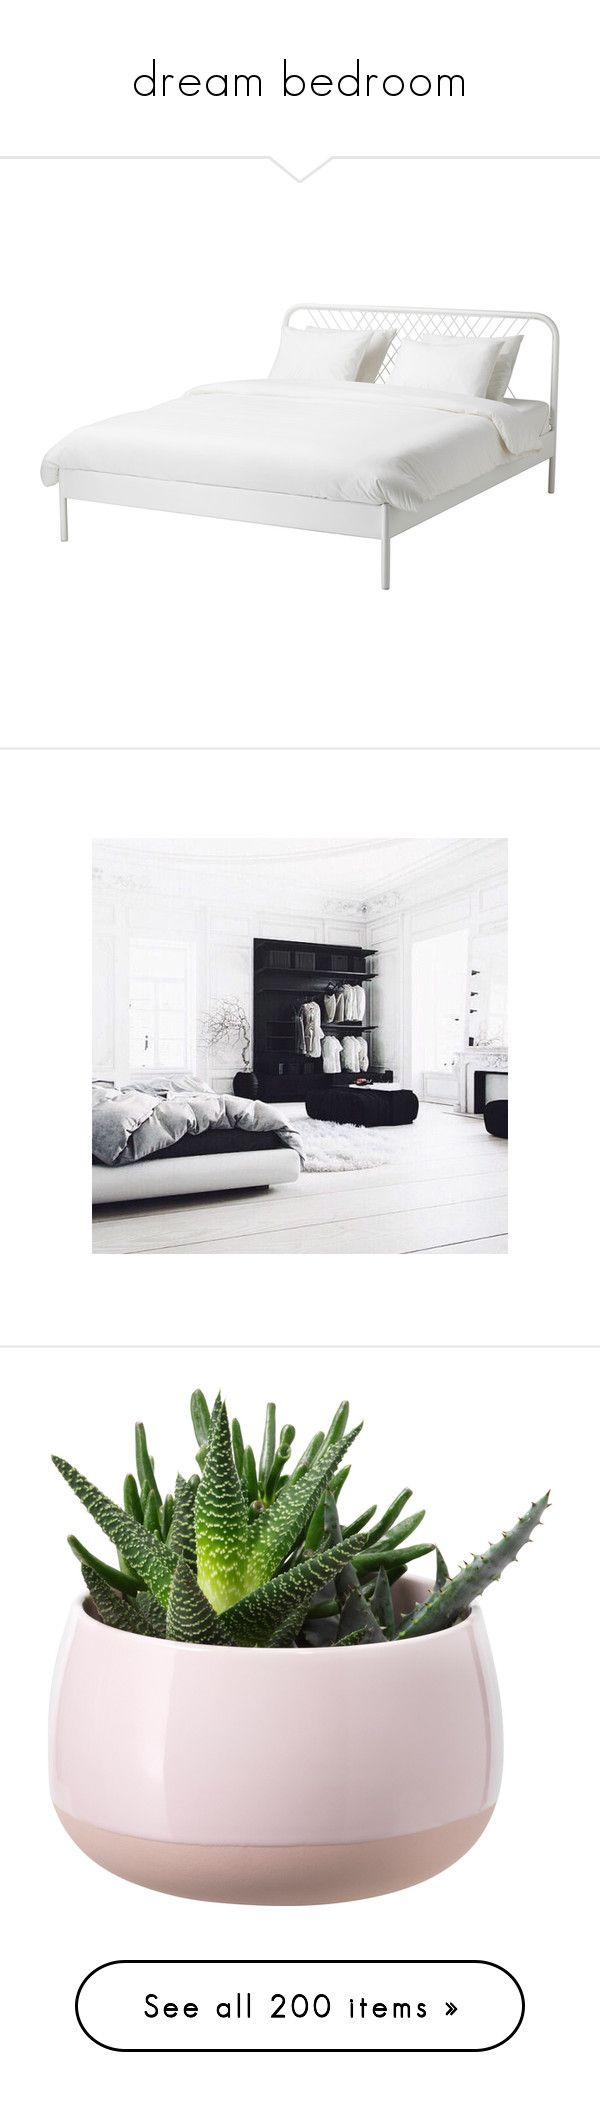 """""""dream bedroom"""" by lucas-stylesh ❤ liked on Polyvore featuring home, children's room, children's bedding, bed, ikea, white, bed frame, home decor, floral decor and fillers"""